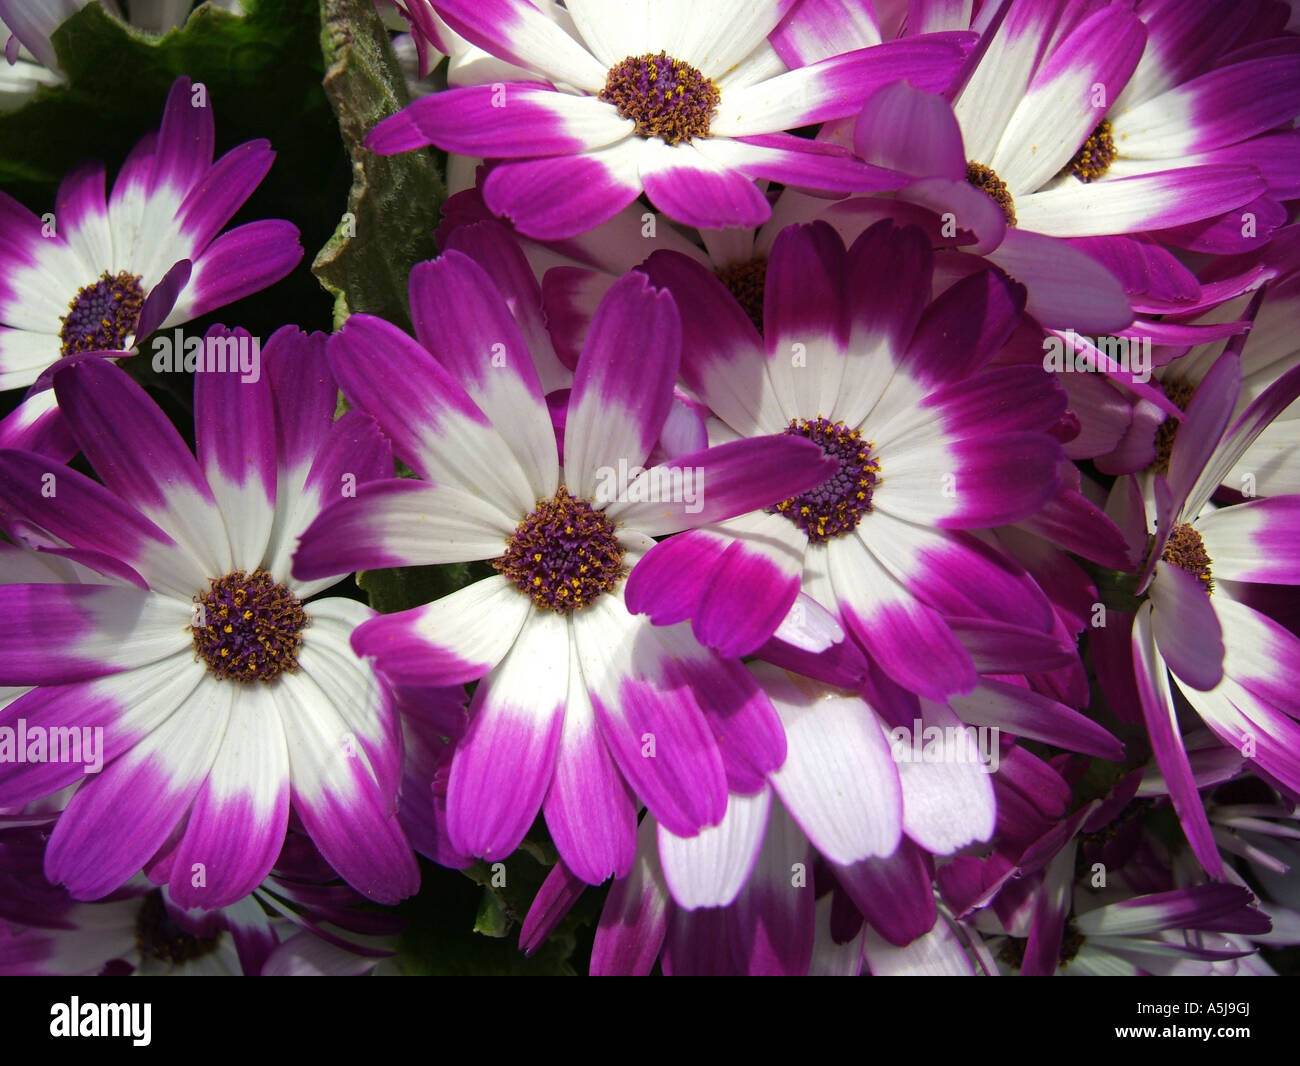 cineraria with purple and white flowers stock photo, royalty free, Natural flower